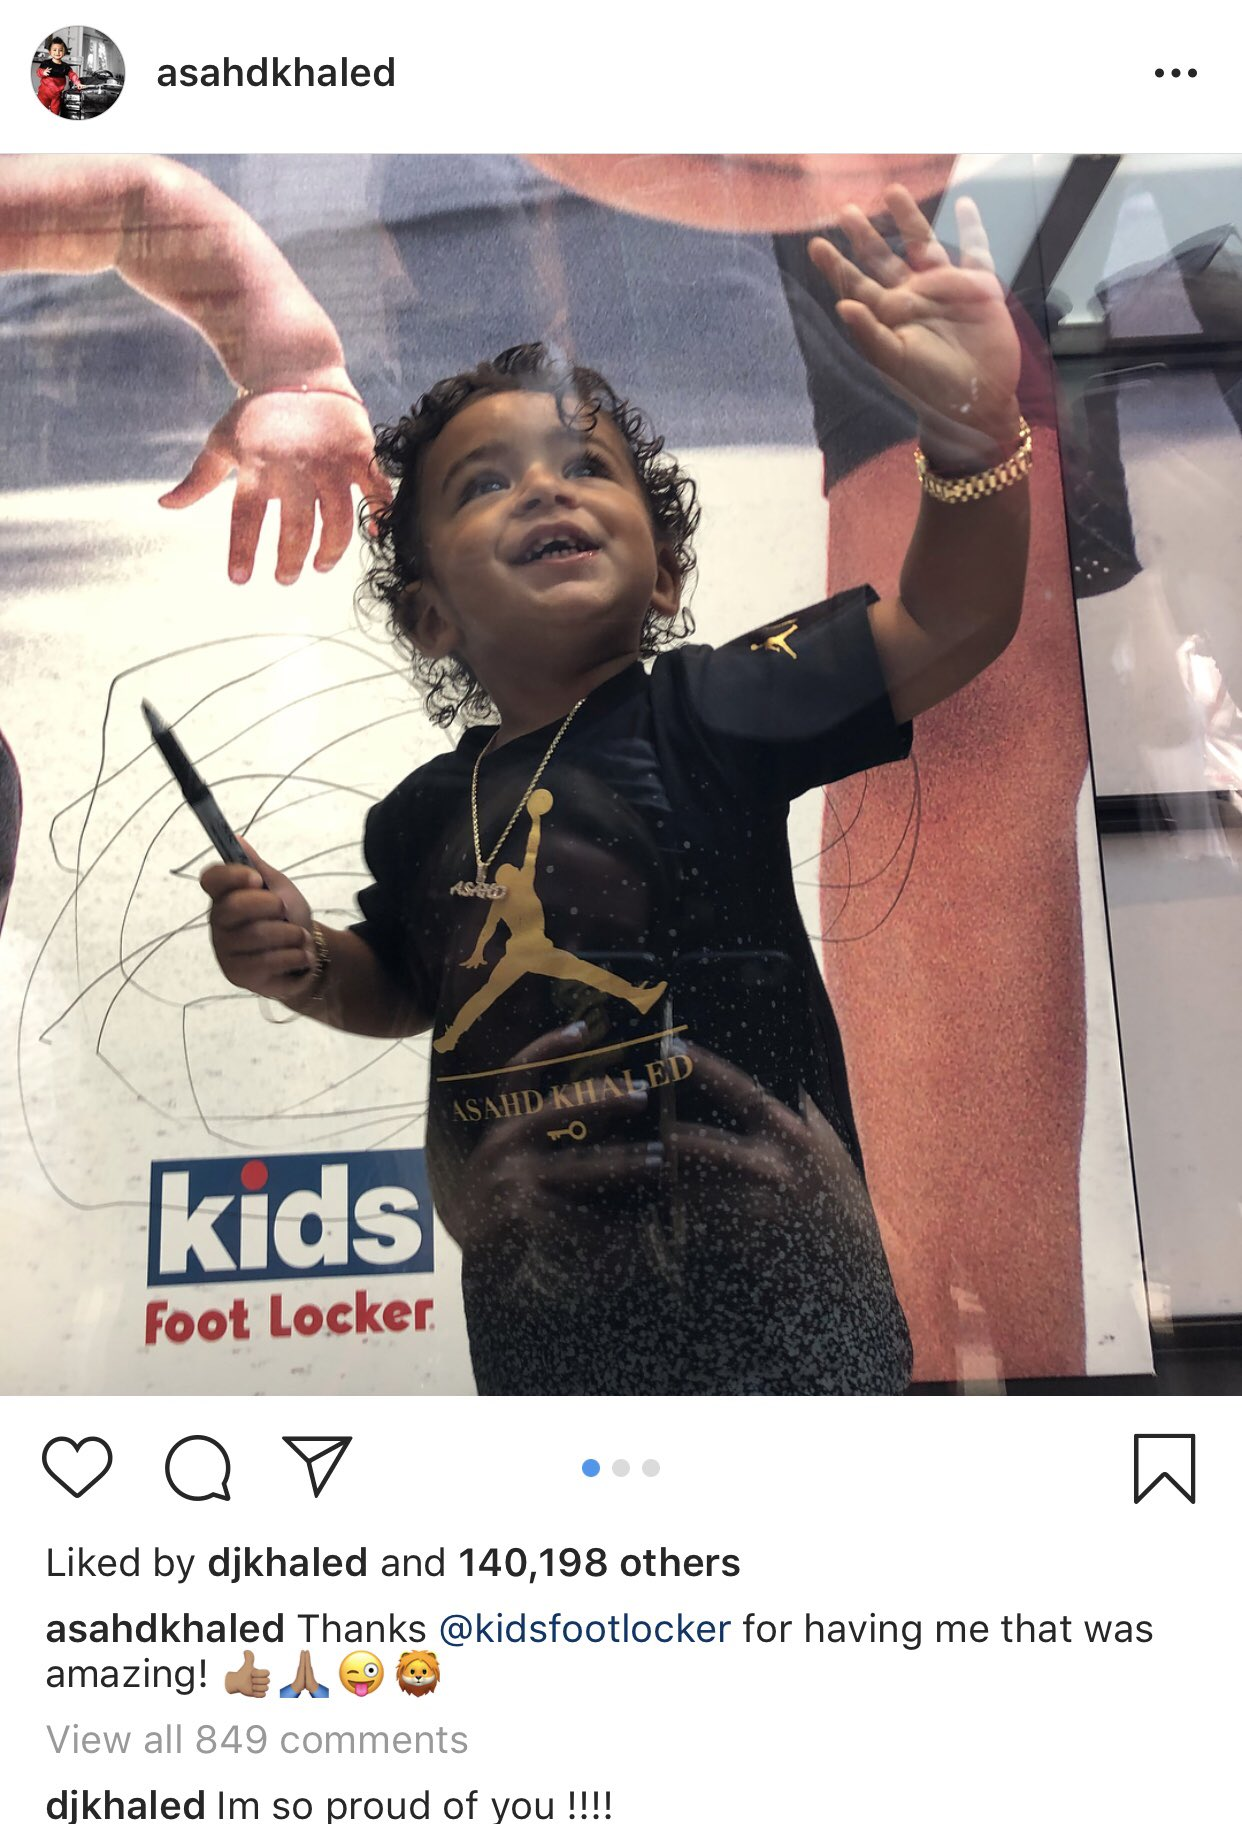 DJ Khaled comments on Asahd's IG photos the same way we talk about our prospects. https://t.co/1pYRUR2xVM